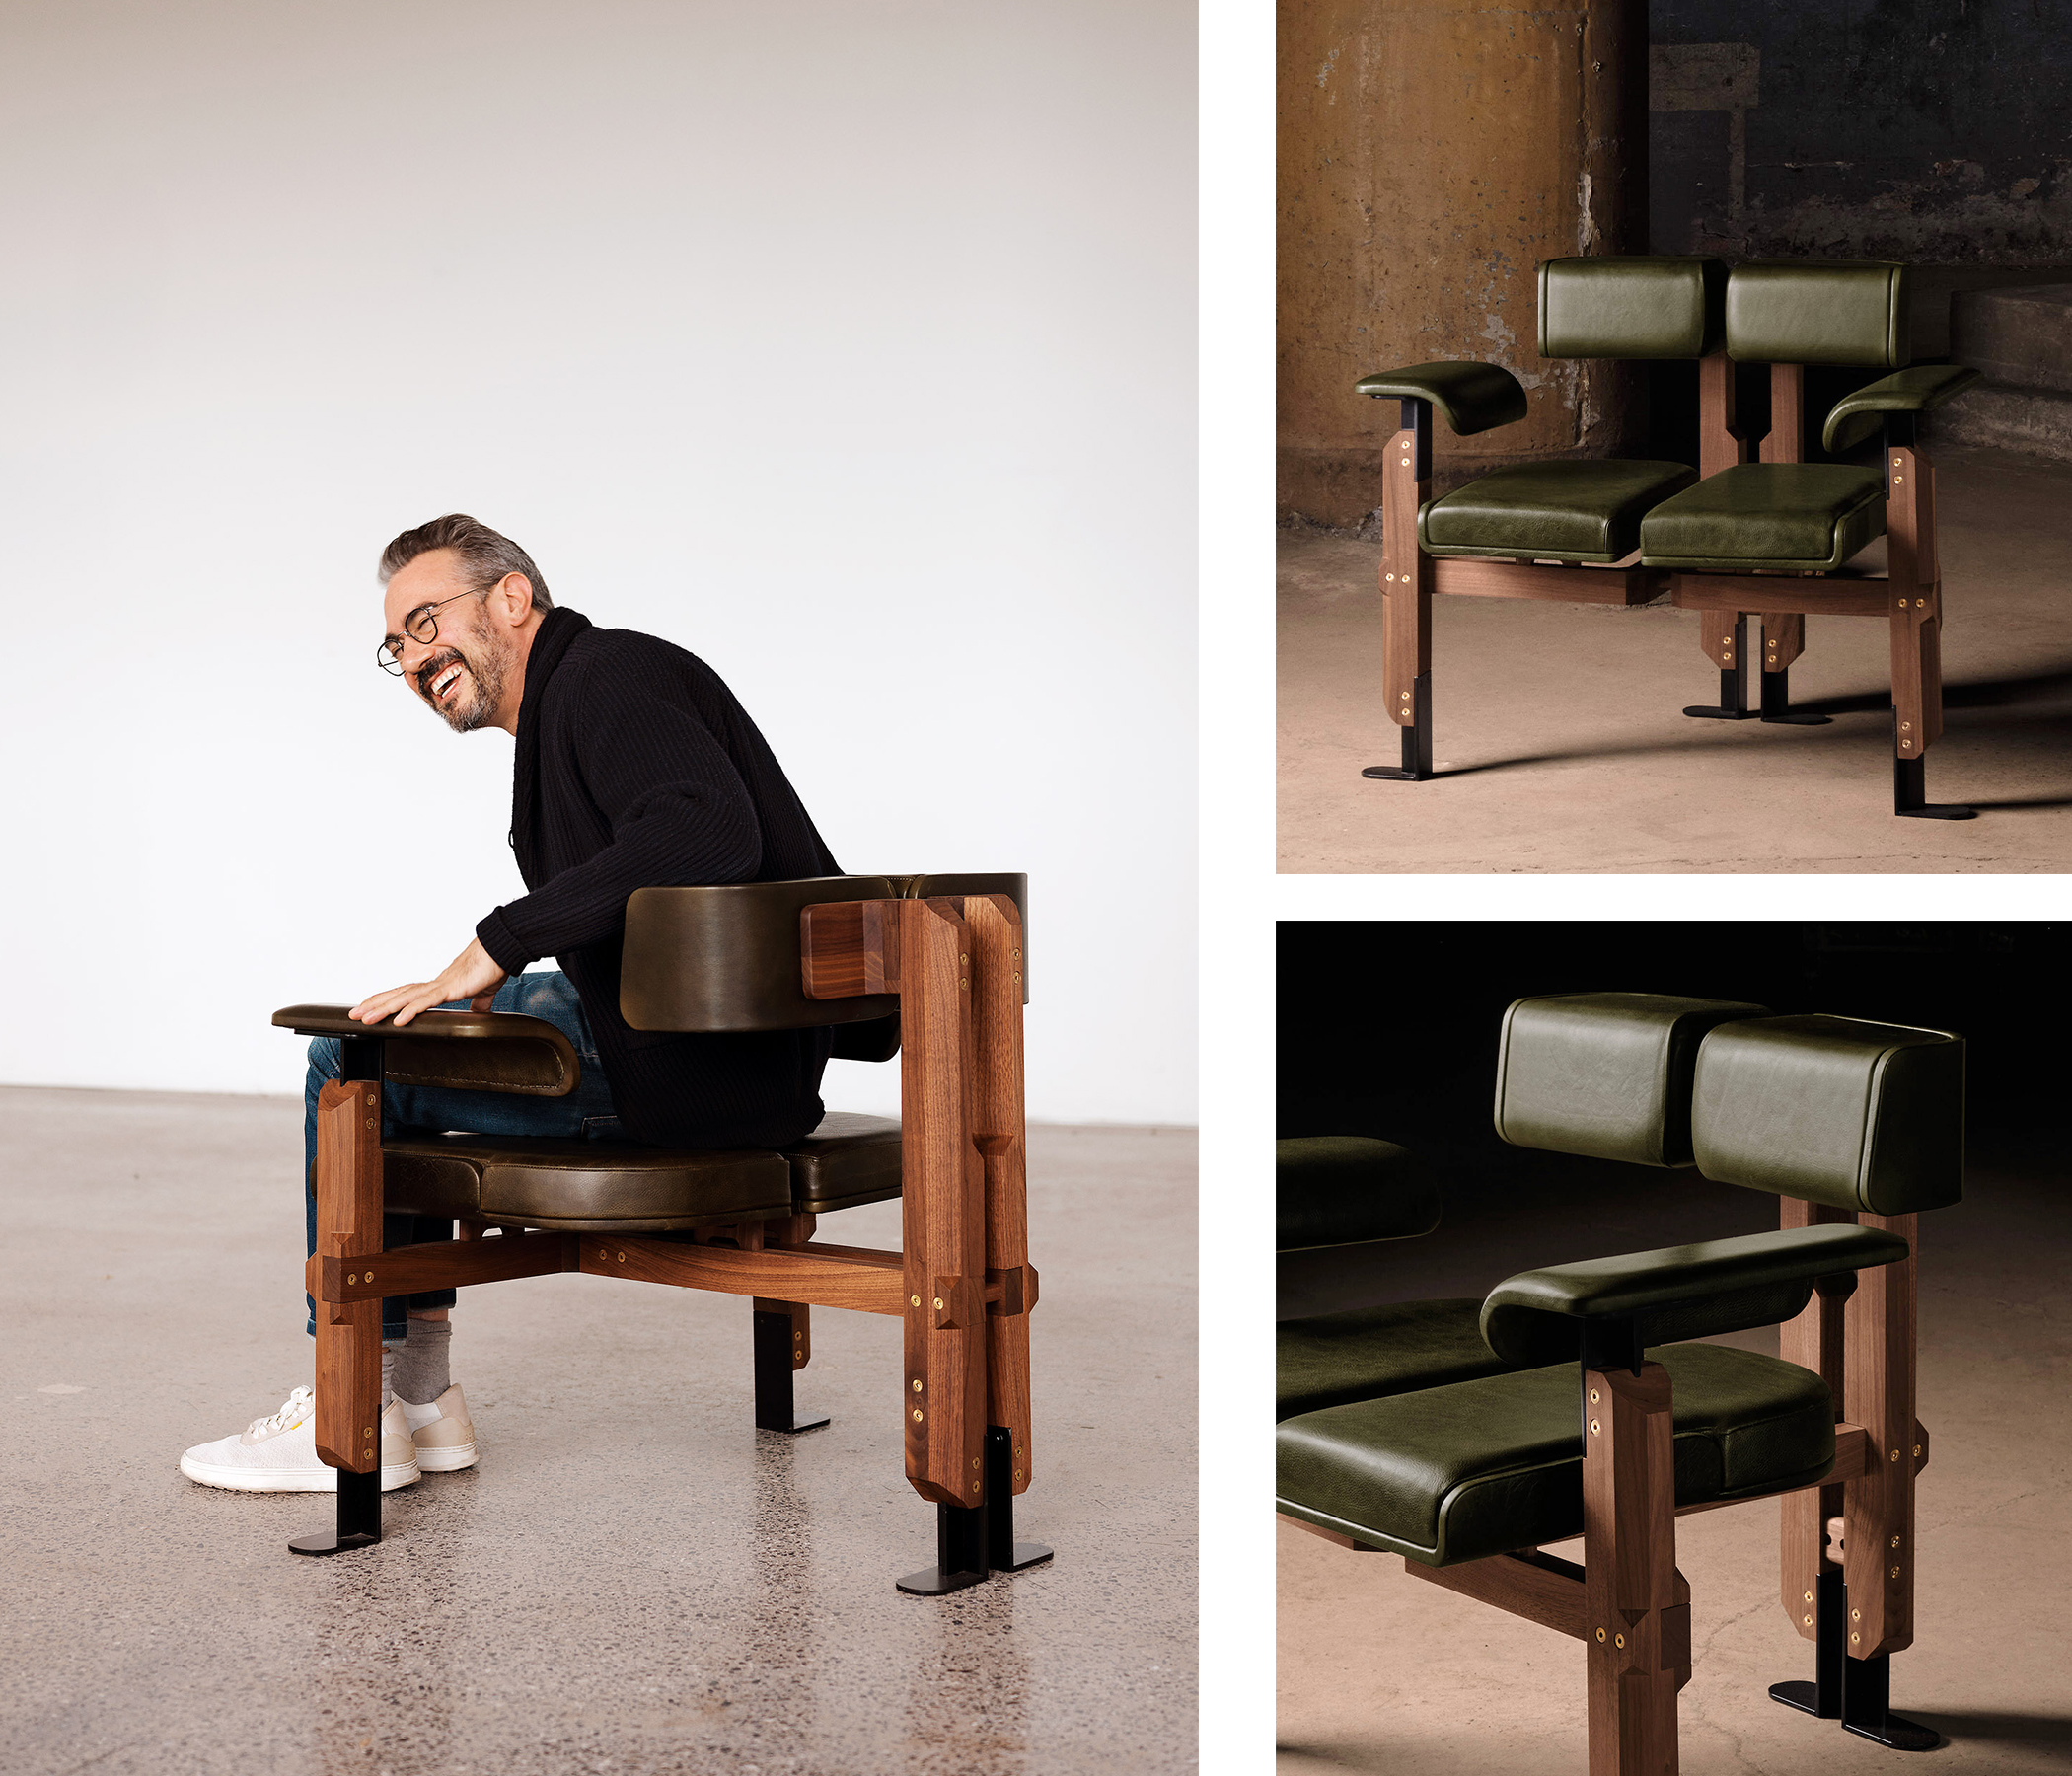 Designer Zébulon Perron and his Spineless Chair